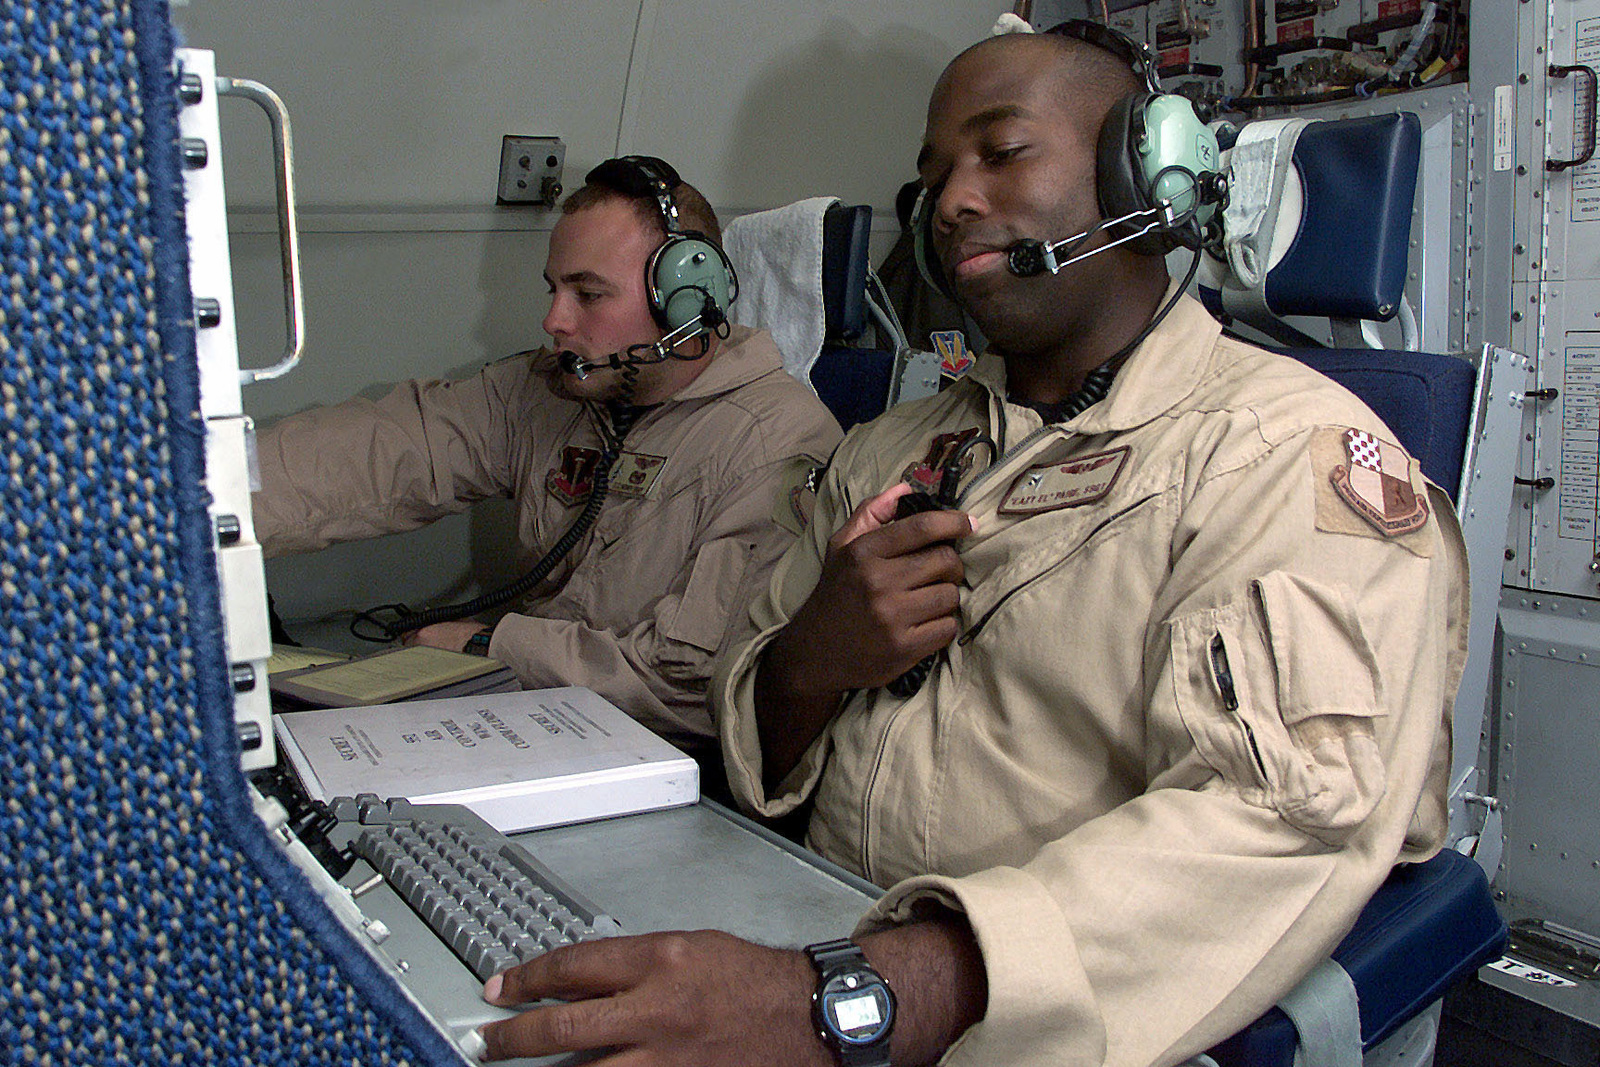 US Air Force STAFF Sergeant Elliott Paige (Foreground) a Computer Systems Operator, 964th Airborne Air Control Squadron, Tinker Air Force Base, Oklahoma, does his preflight checklist before a flight at Prince Sultan Air Base, Saudi Arabia. SSGT Harpek is a part of the coalition forces of the 363rd Air Expeditionary Wing that enforces the no-fly and no-drive zone in Southern Iraq to protect and defend against Iraqi aggression. This mission is in direct support of Operation SOUTHERN WATCH